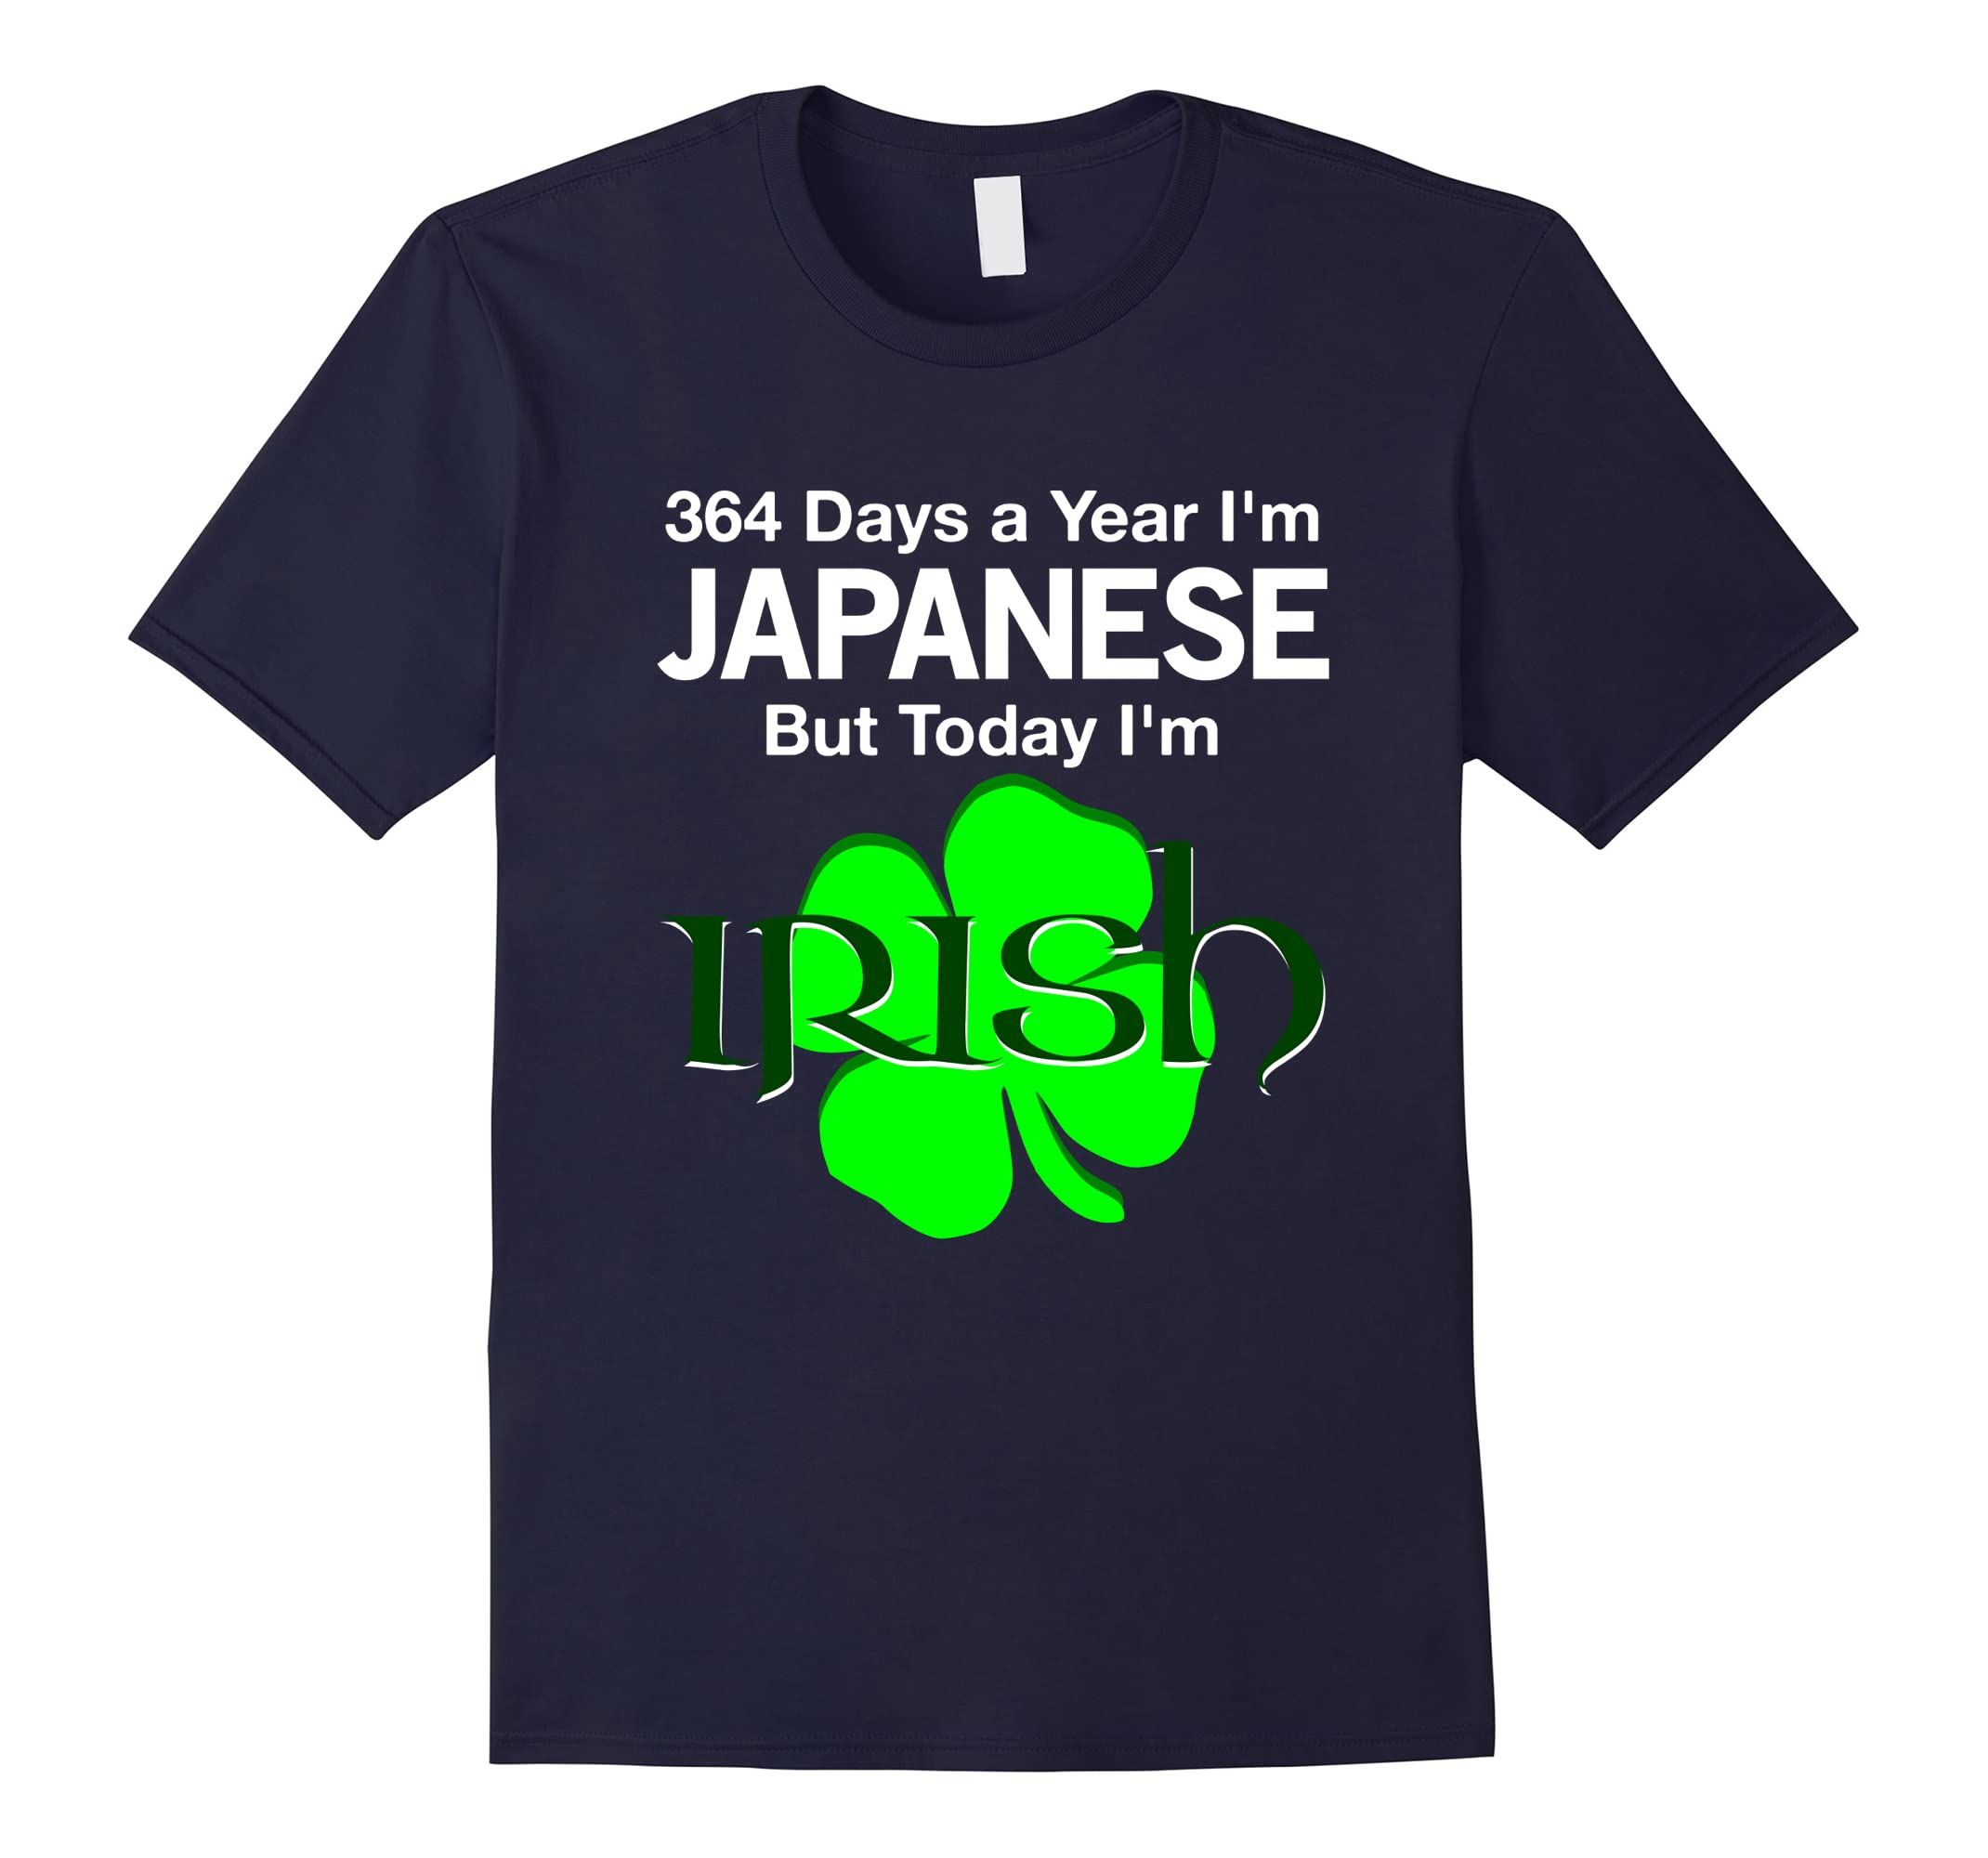 364 Days A Year I'm Japanese, But Today I'm Irish T Shirt-ah my shirt one gift